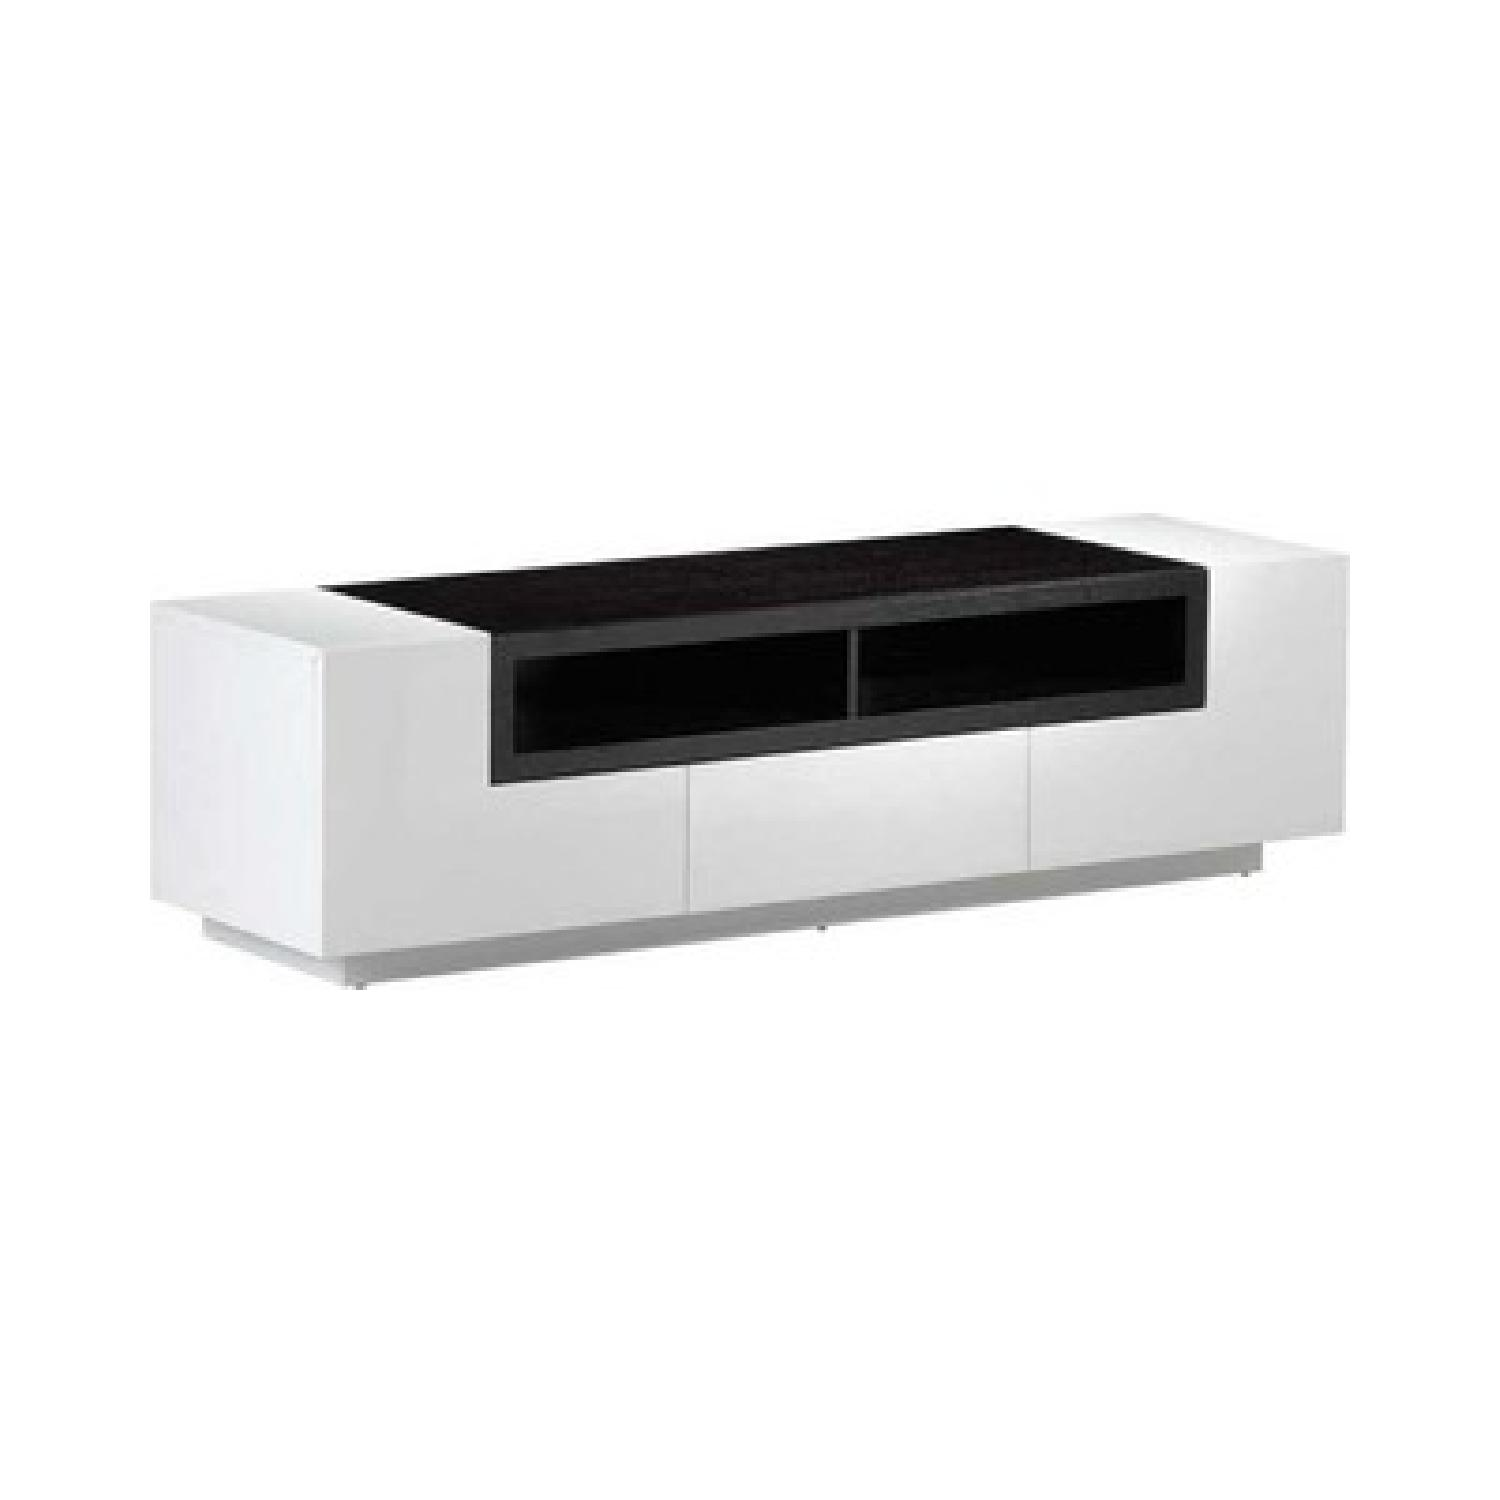 Contemporary TV Stand in White High Gloss Finish.